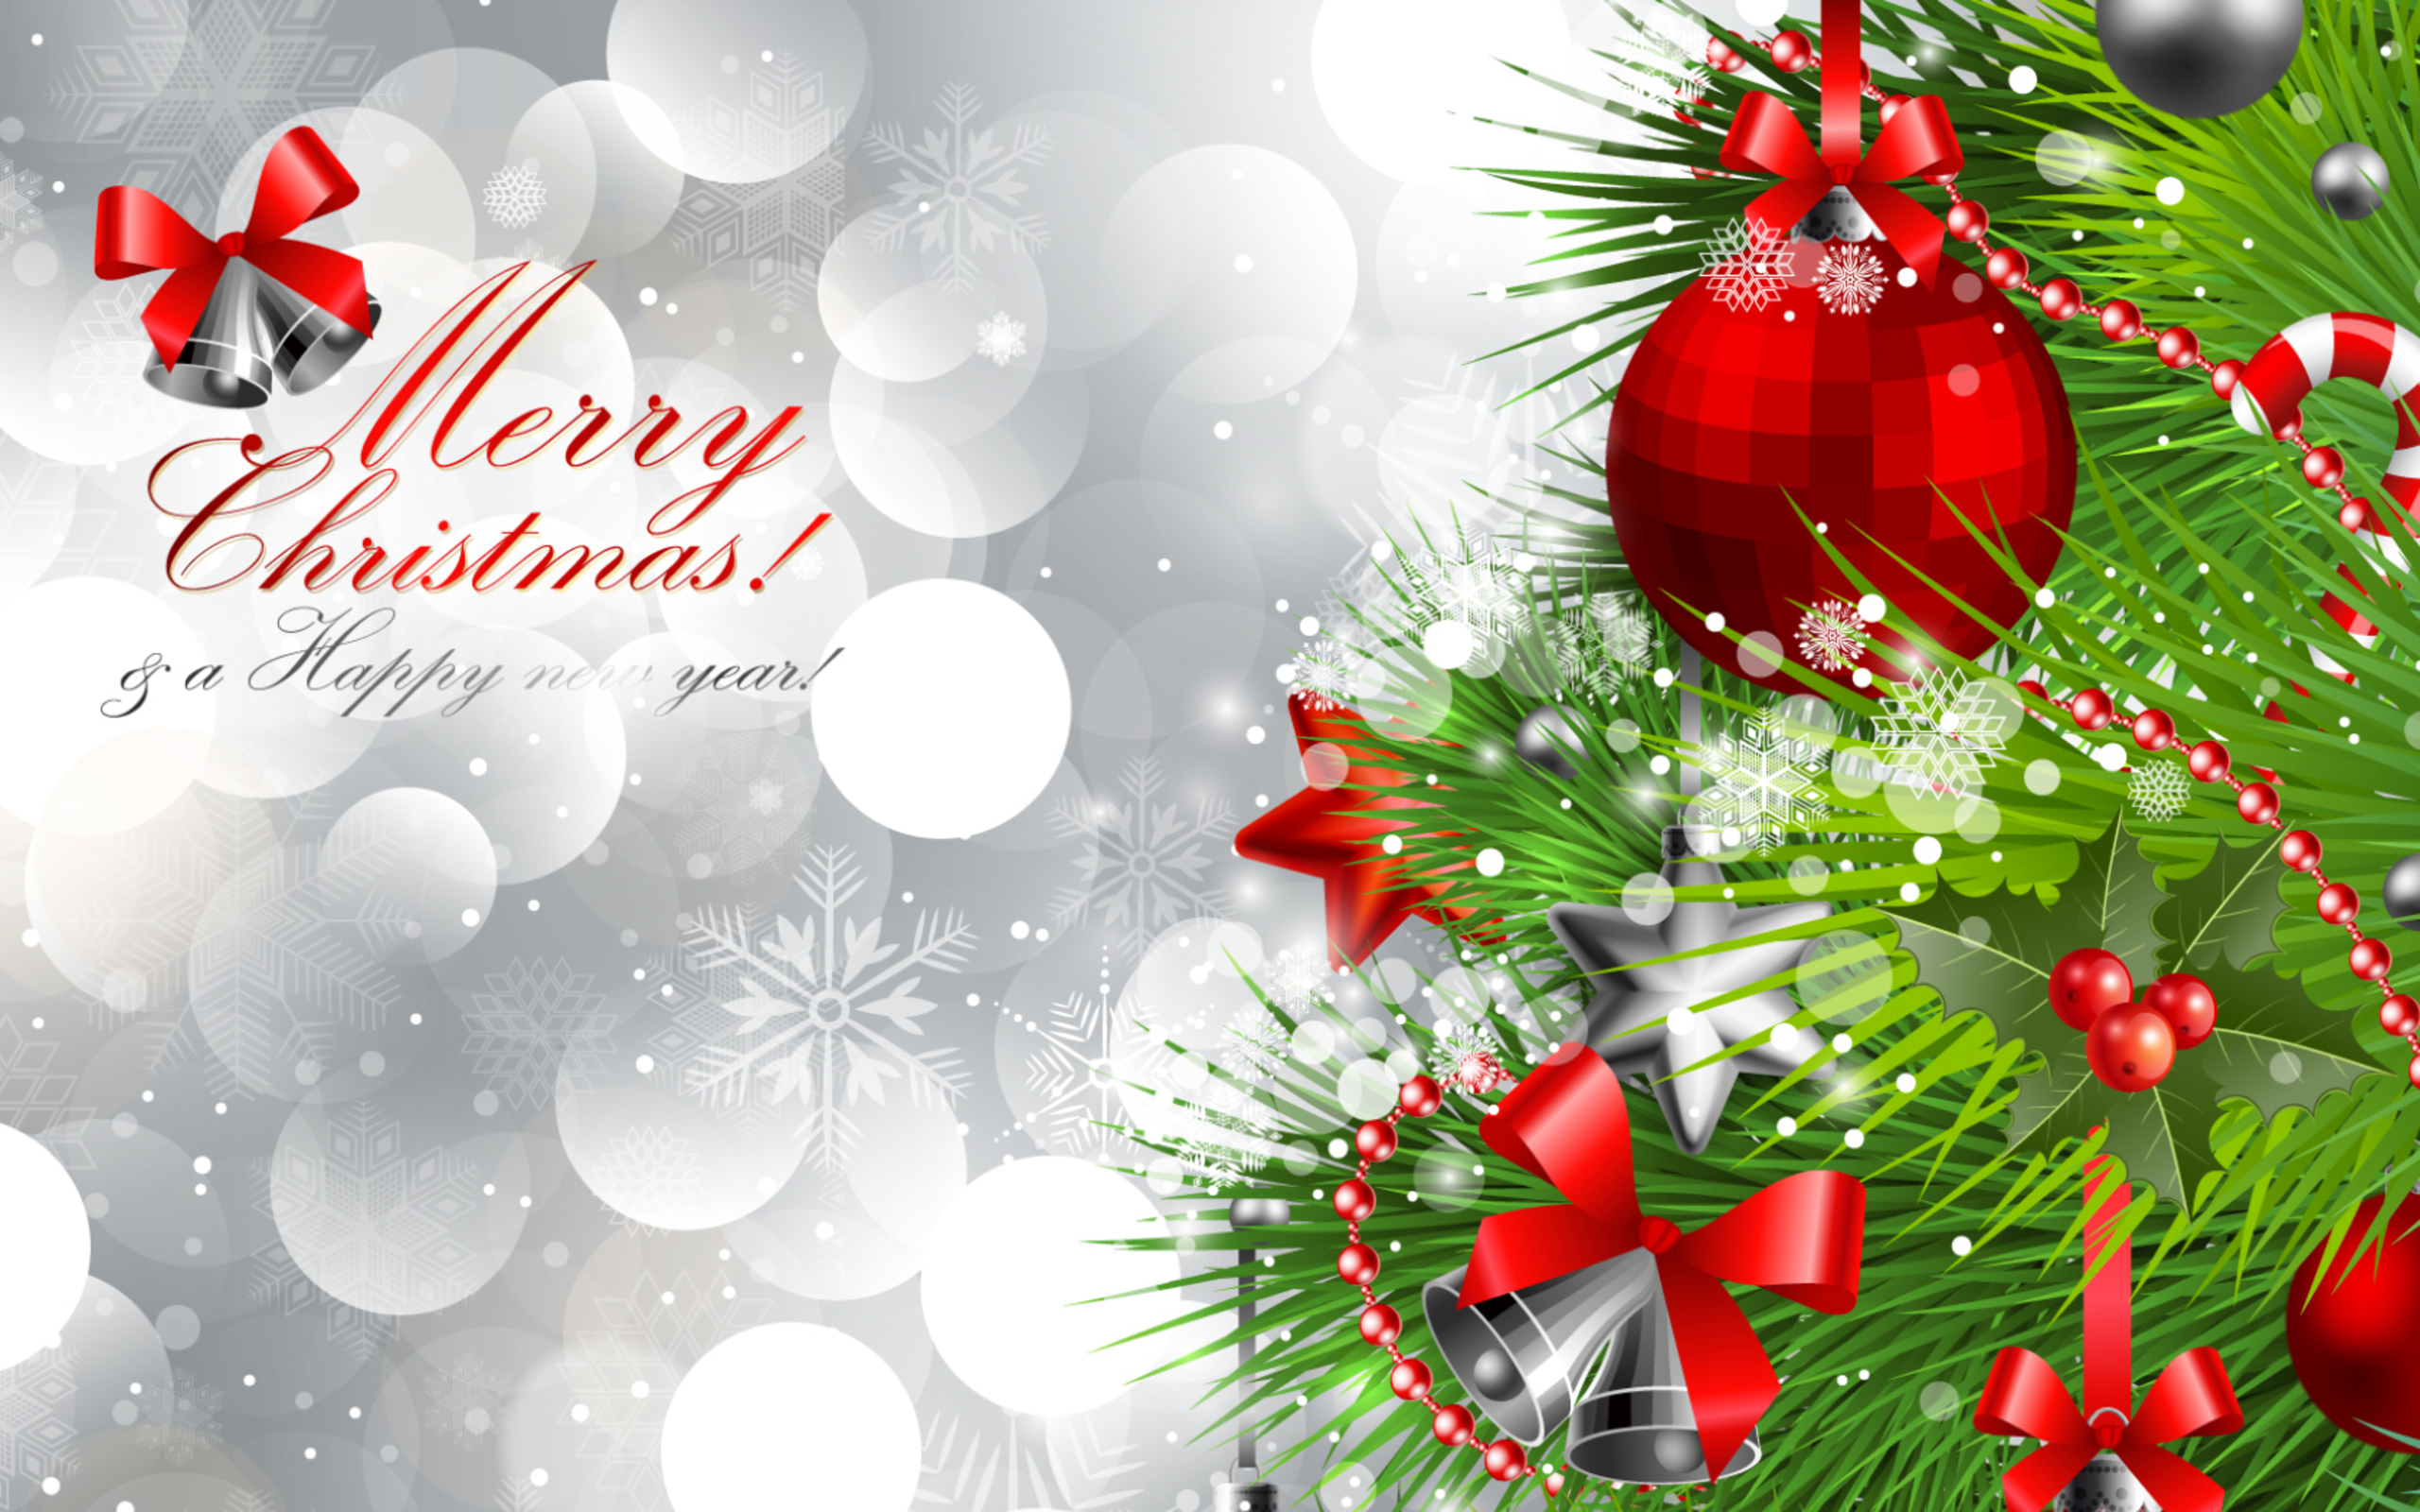 Merry Christmas and Happy New Year Silver Background.